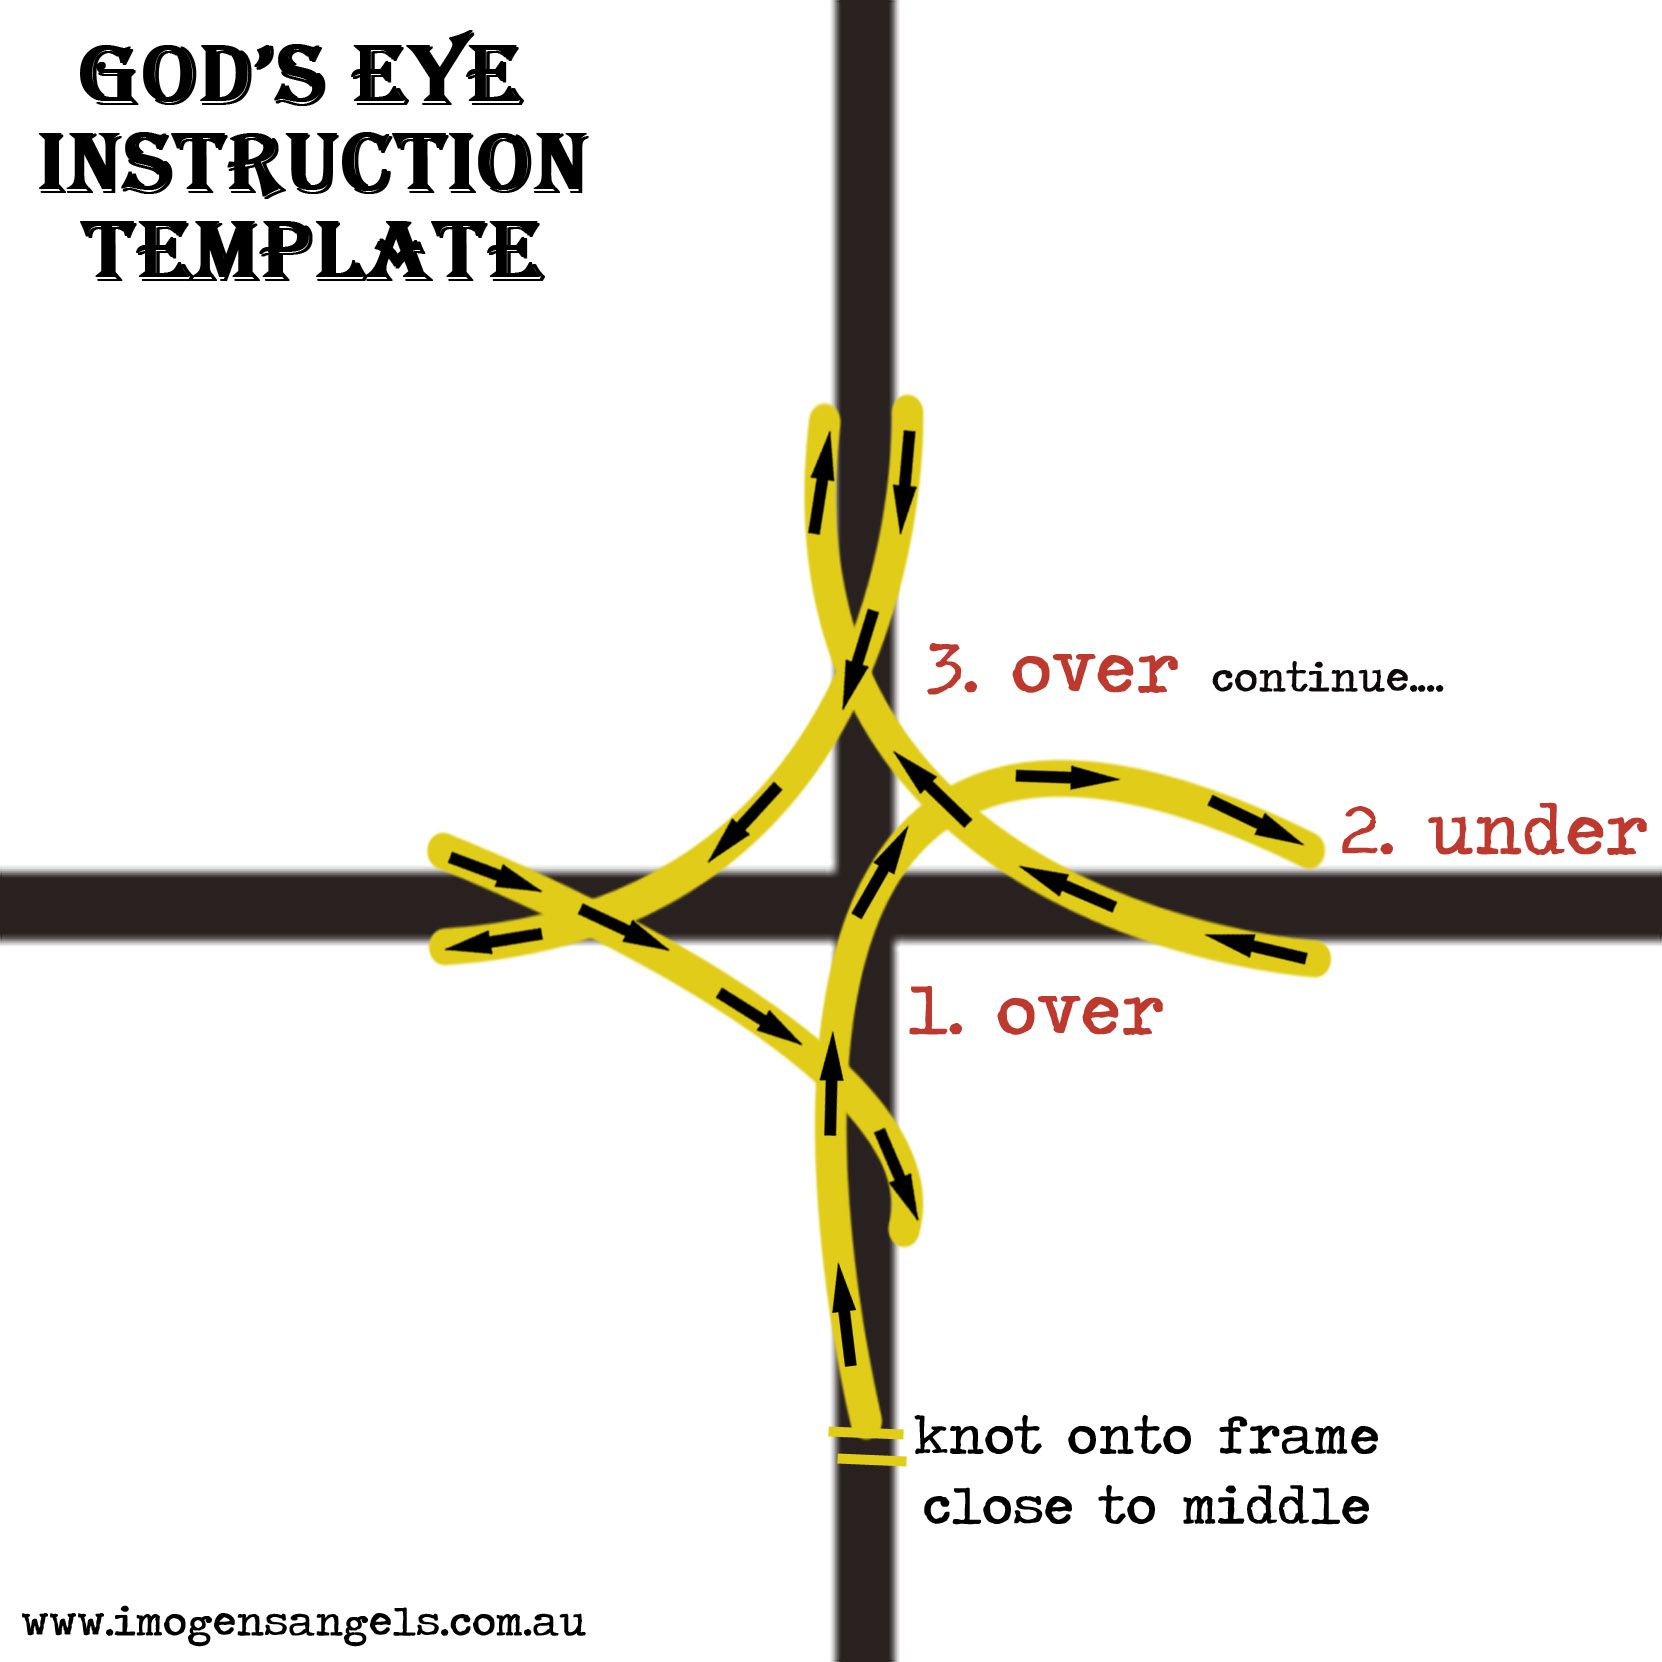 photo about God's Eye Printable Instructions known as Gods Eye Craft Instructions - Yr of New H2o